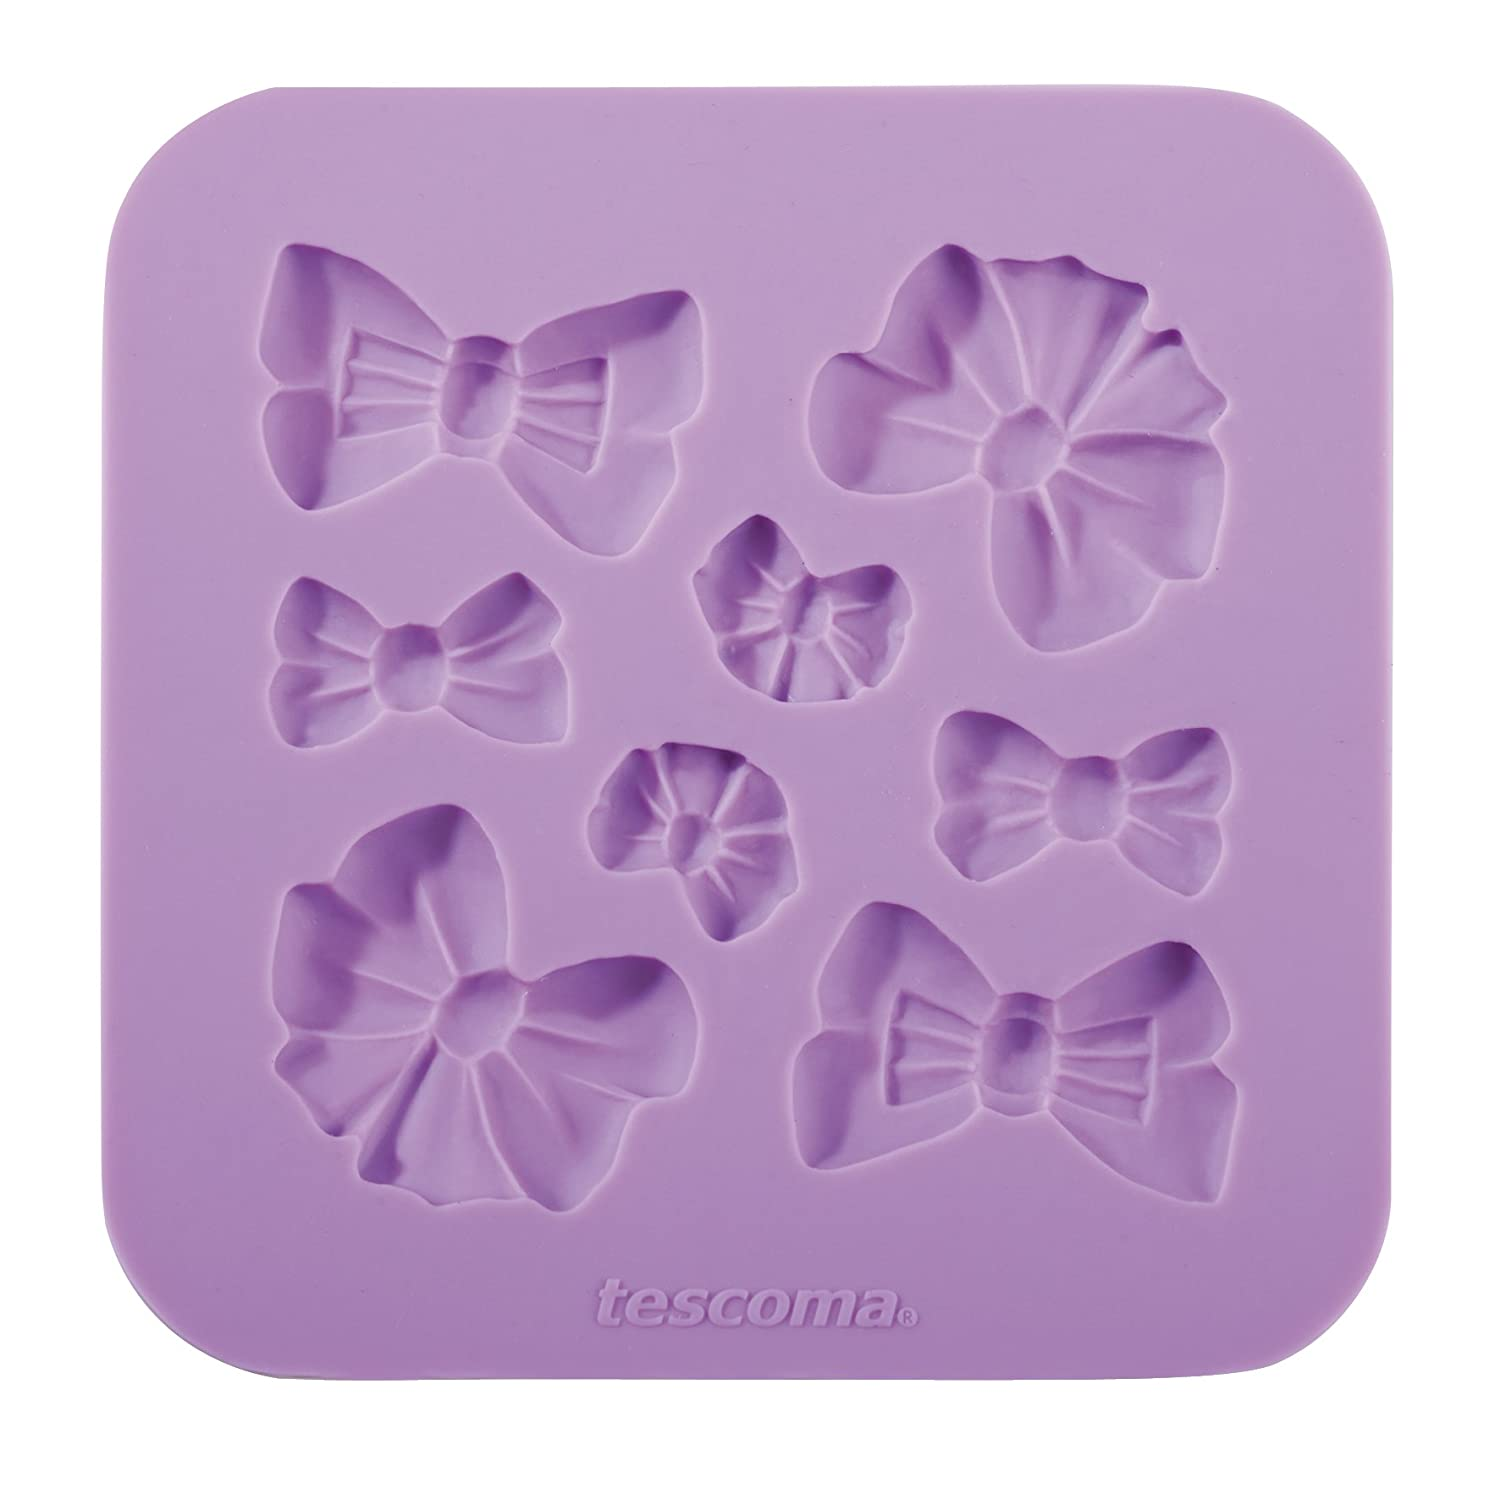 """Assorted 17.5 x 15.4 x 1.3 cm Little Bows """"Delicia Deco"""" Tescoma Silicone Moulds"""